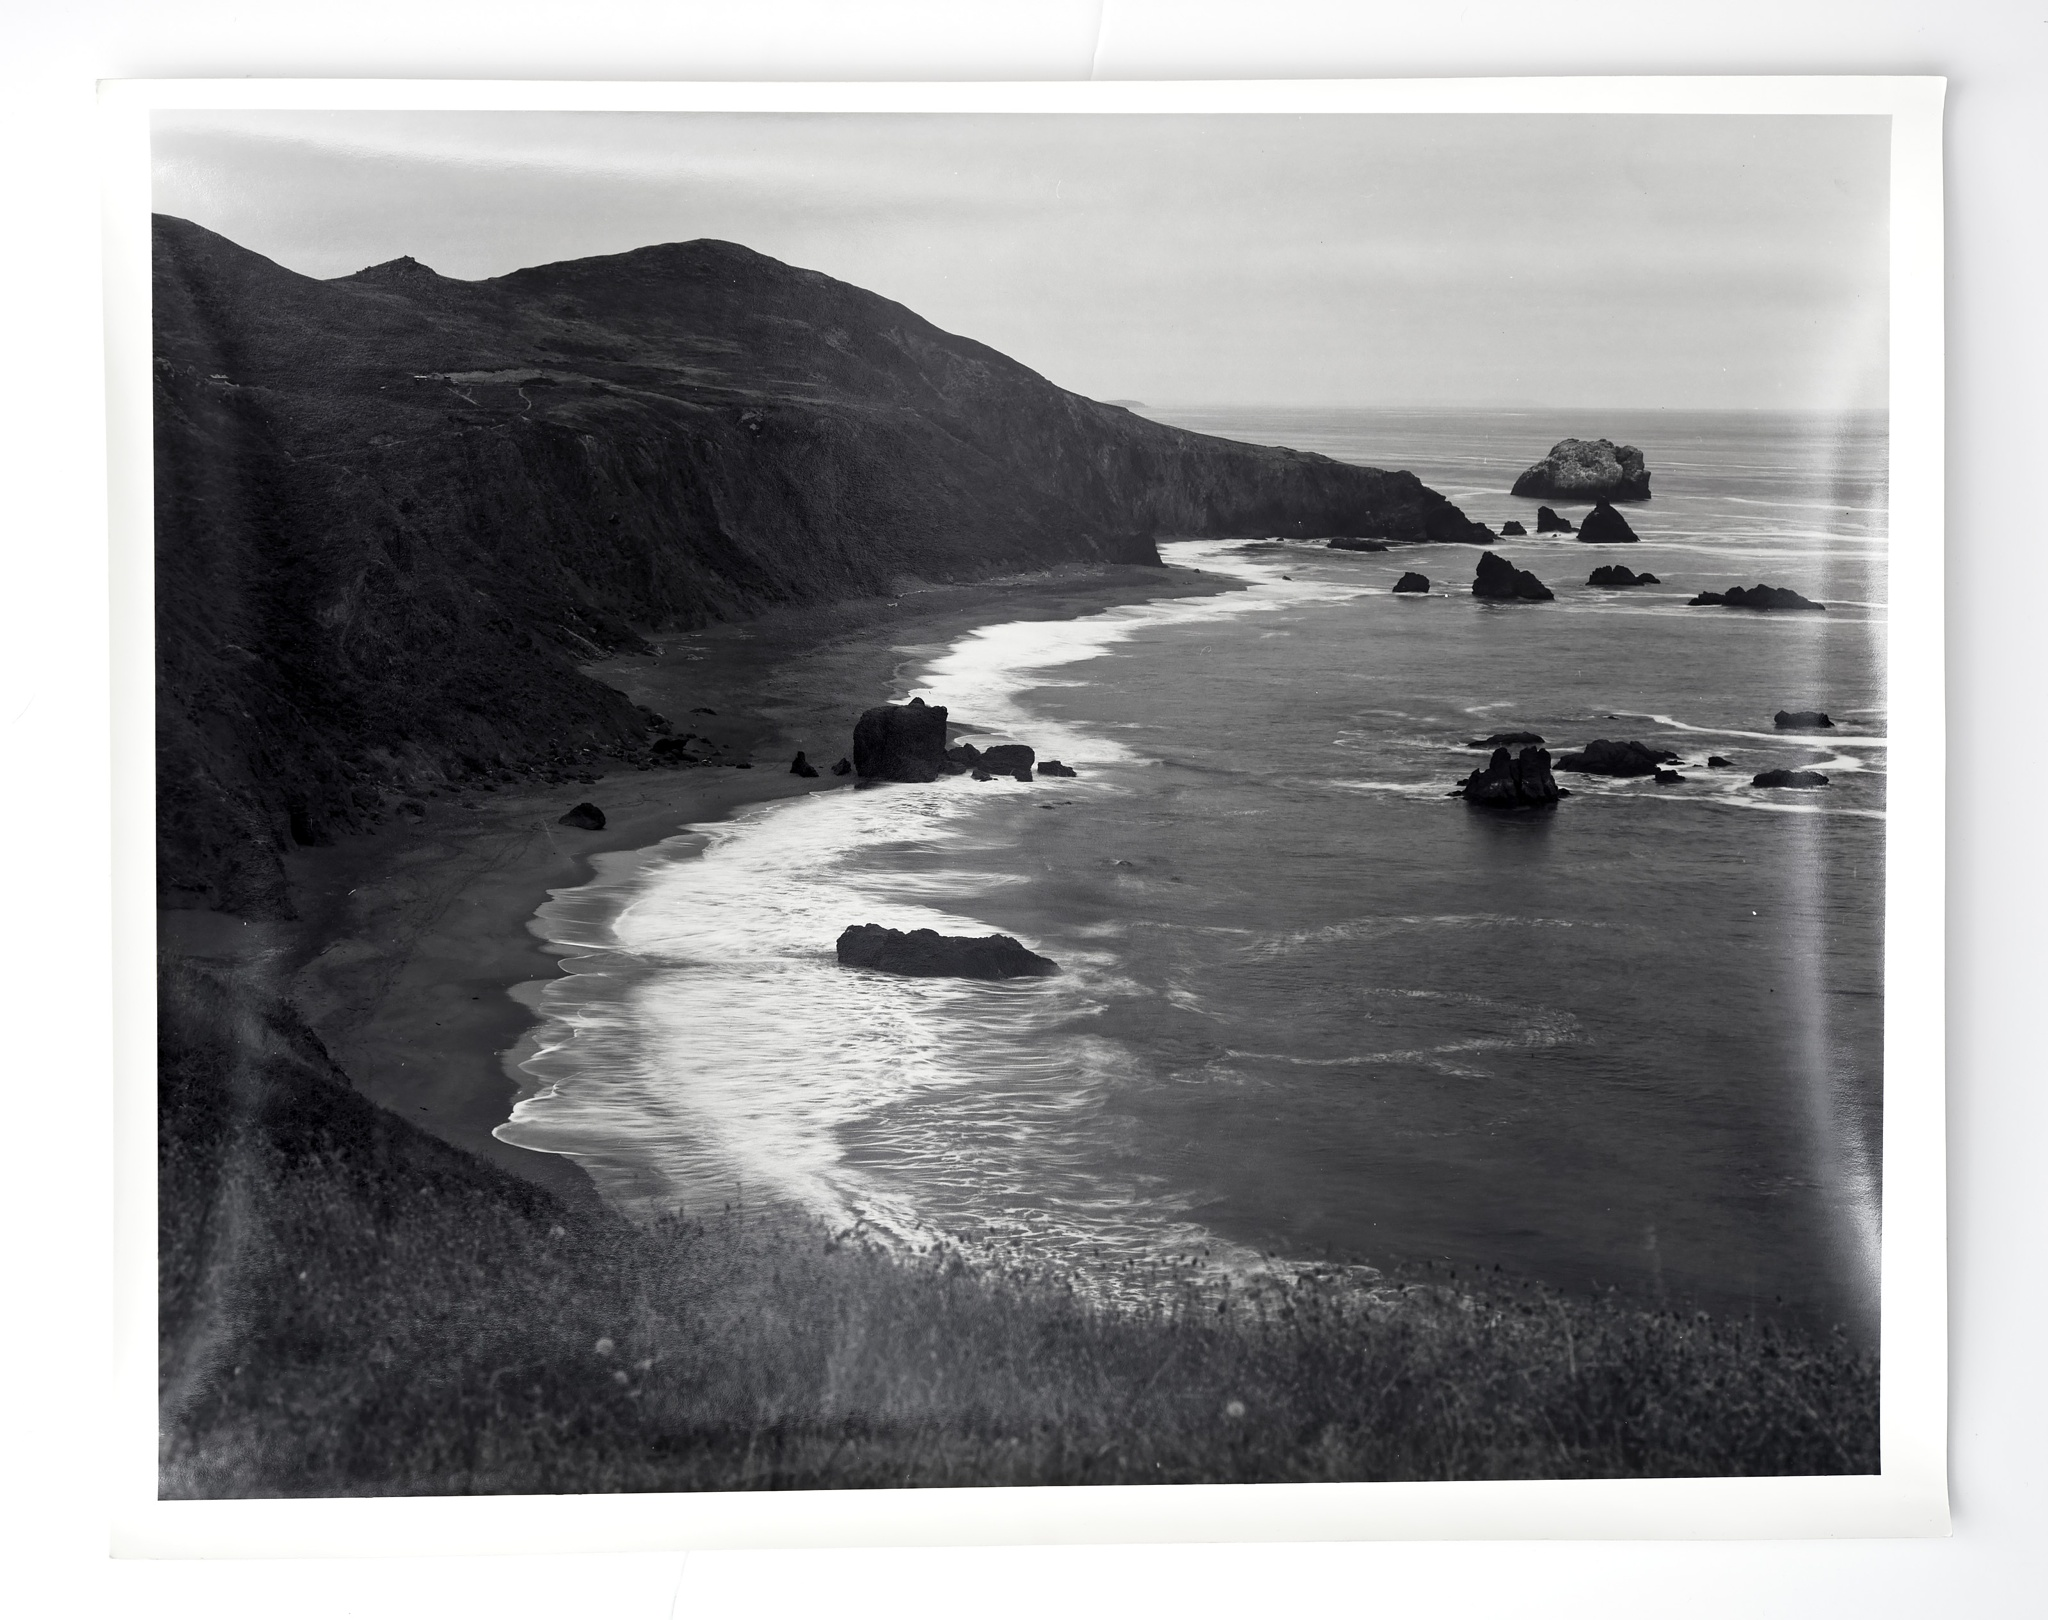 Goat rock - Sonoma county - California by andrewfrith